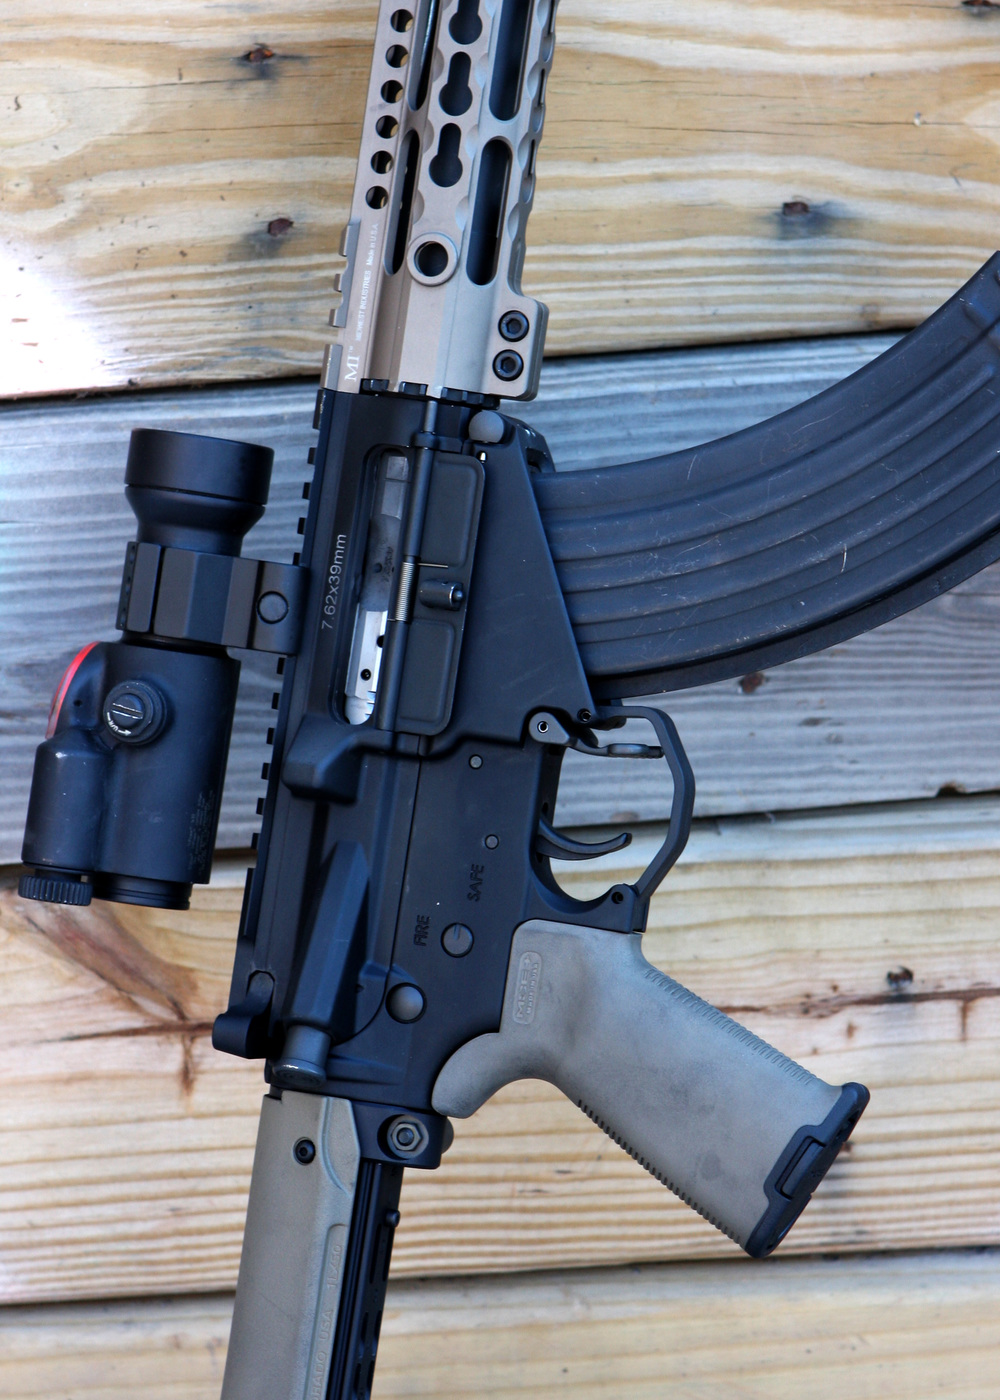 Every AK magazine I have tried has fit and functioned perfectly.